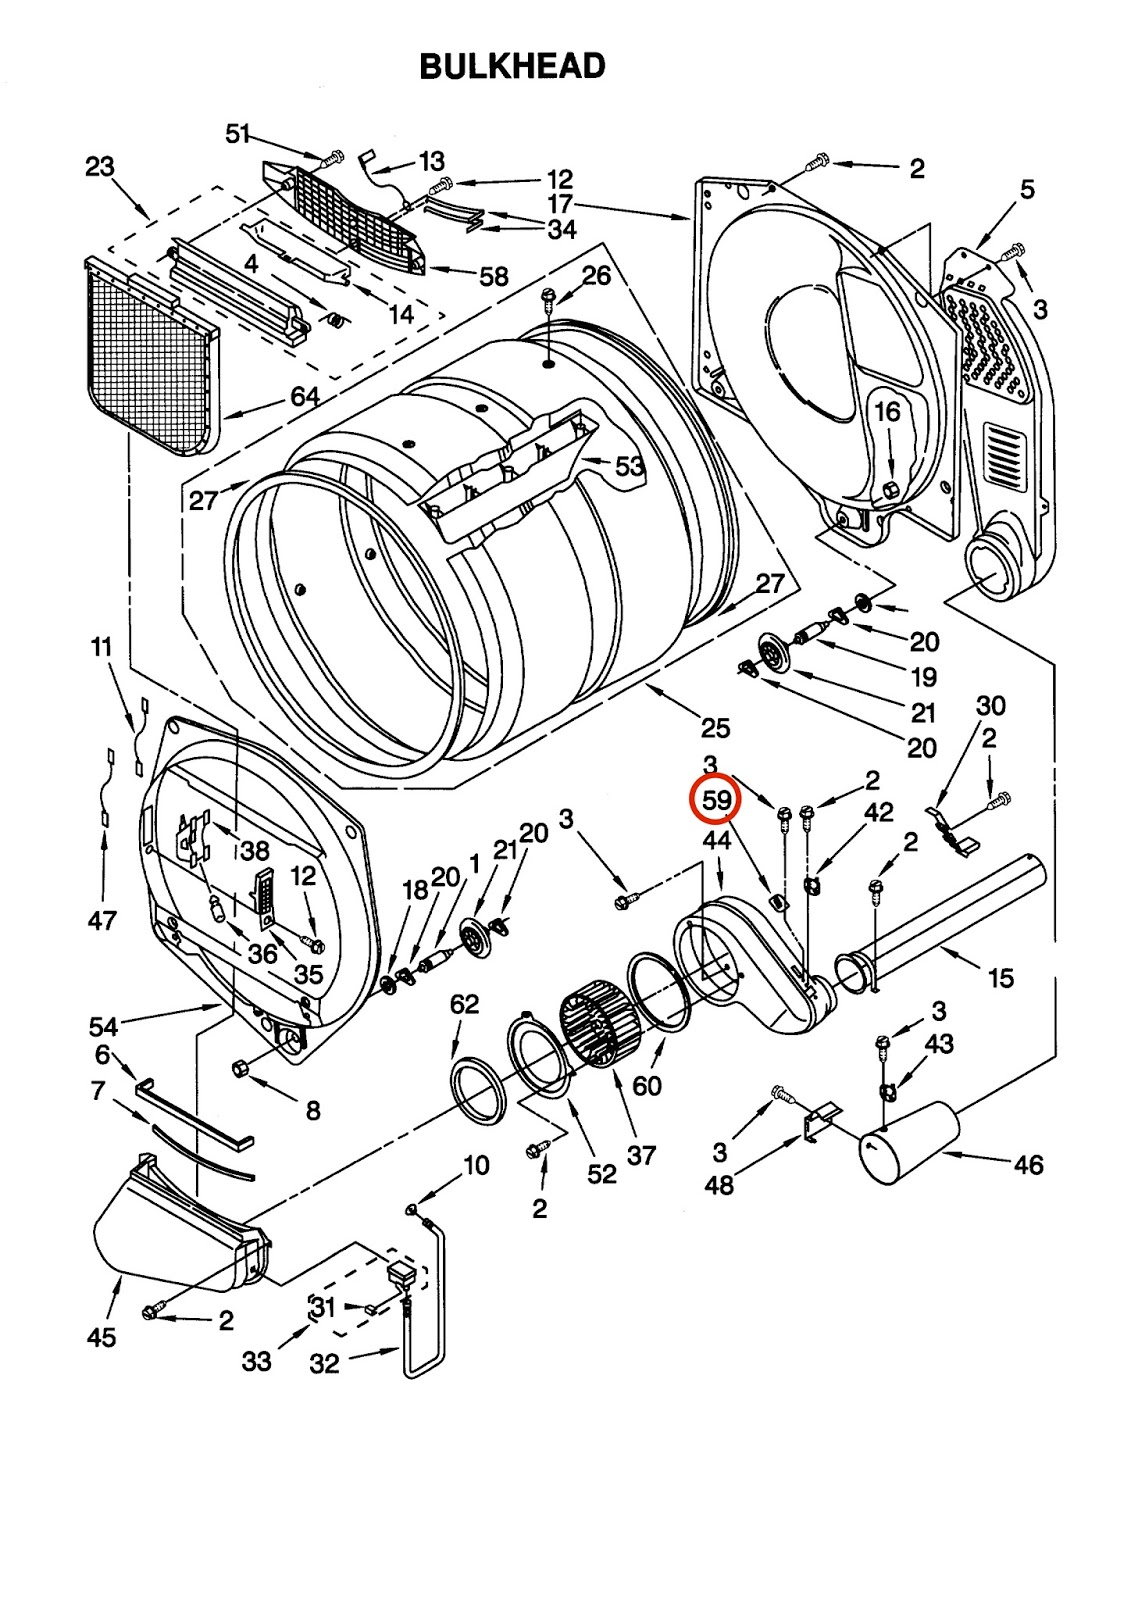 Dryer Parts Diagram Additionally Kenmore Gas Dryer Parts Diagram As